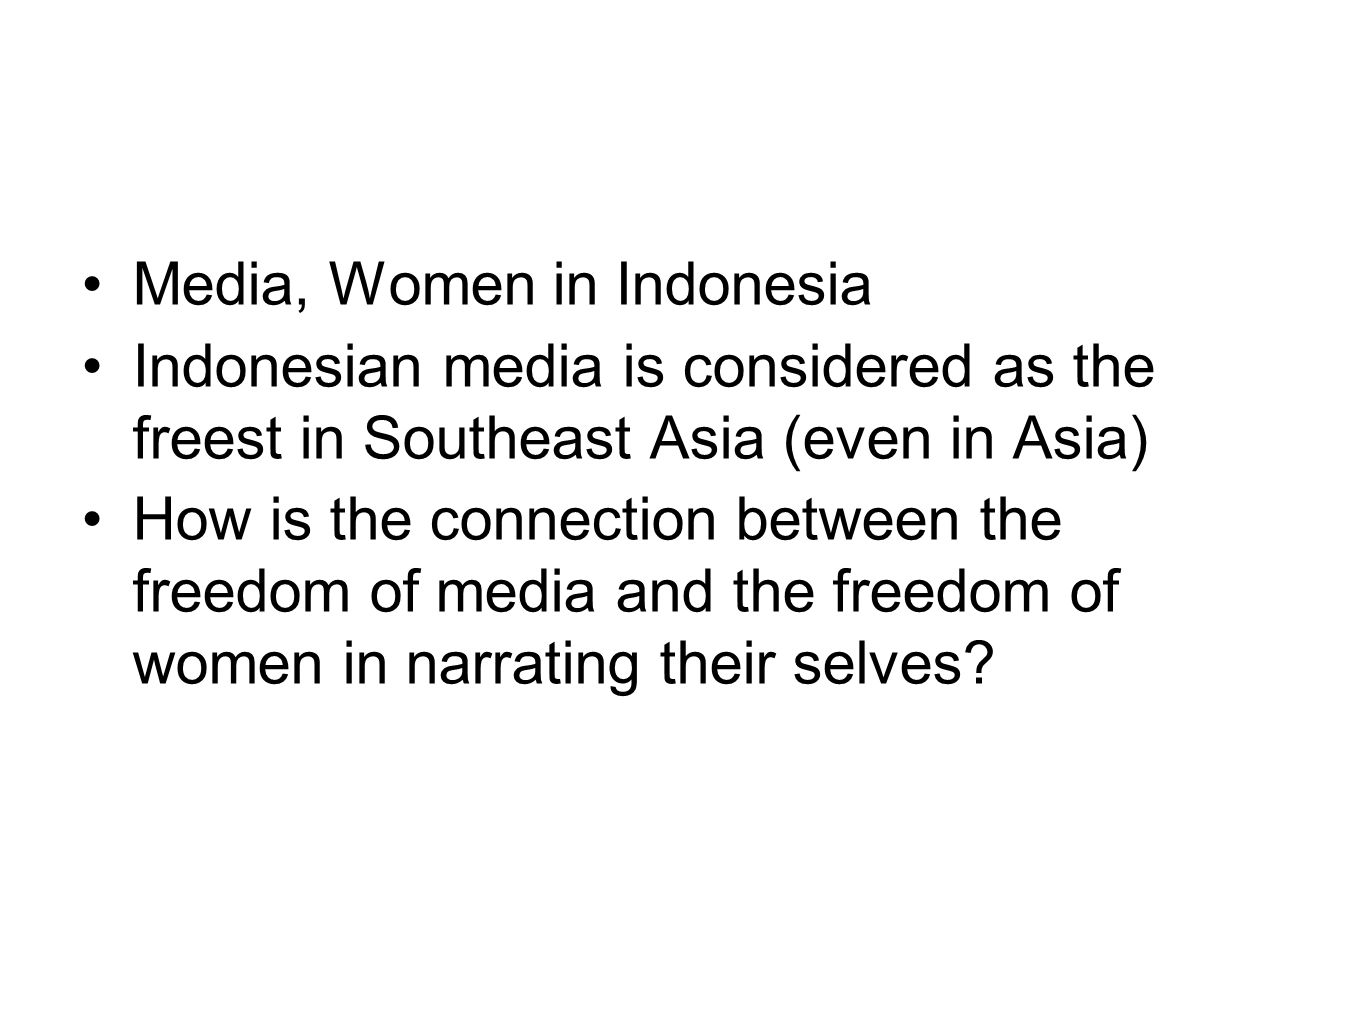 Media, Women in Indonesia Indonesian media is considered as the freest in Southeast Asia (even in Asia) How is the connection between the freedom of media and the freedom of women in narrating their selves